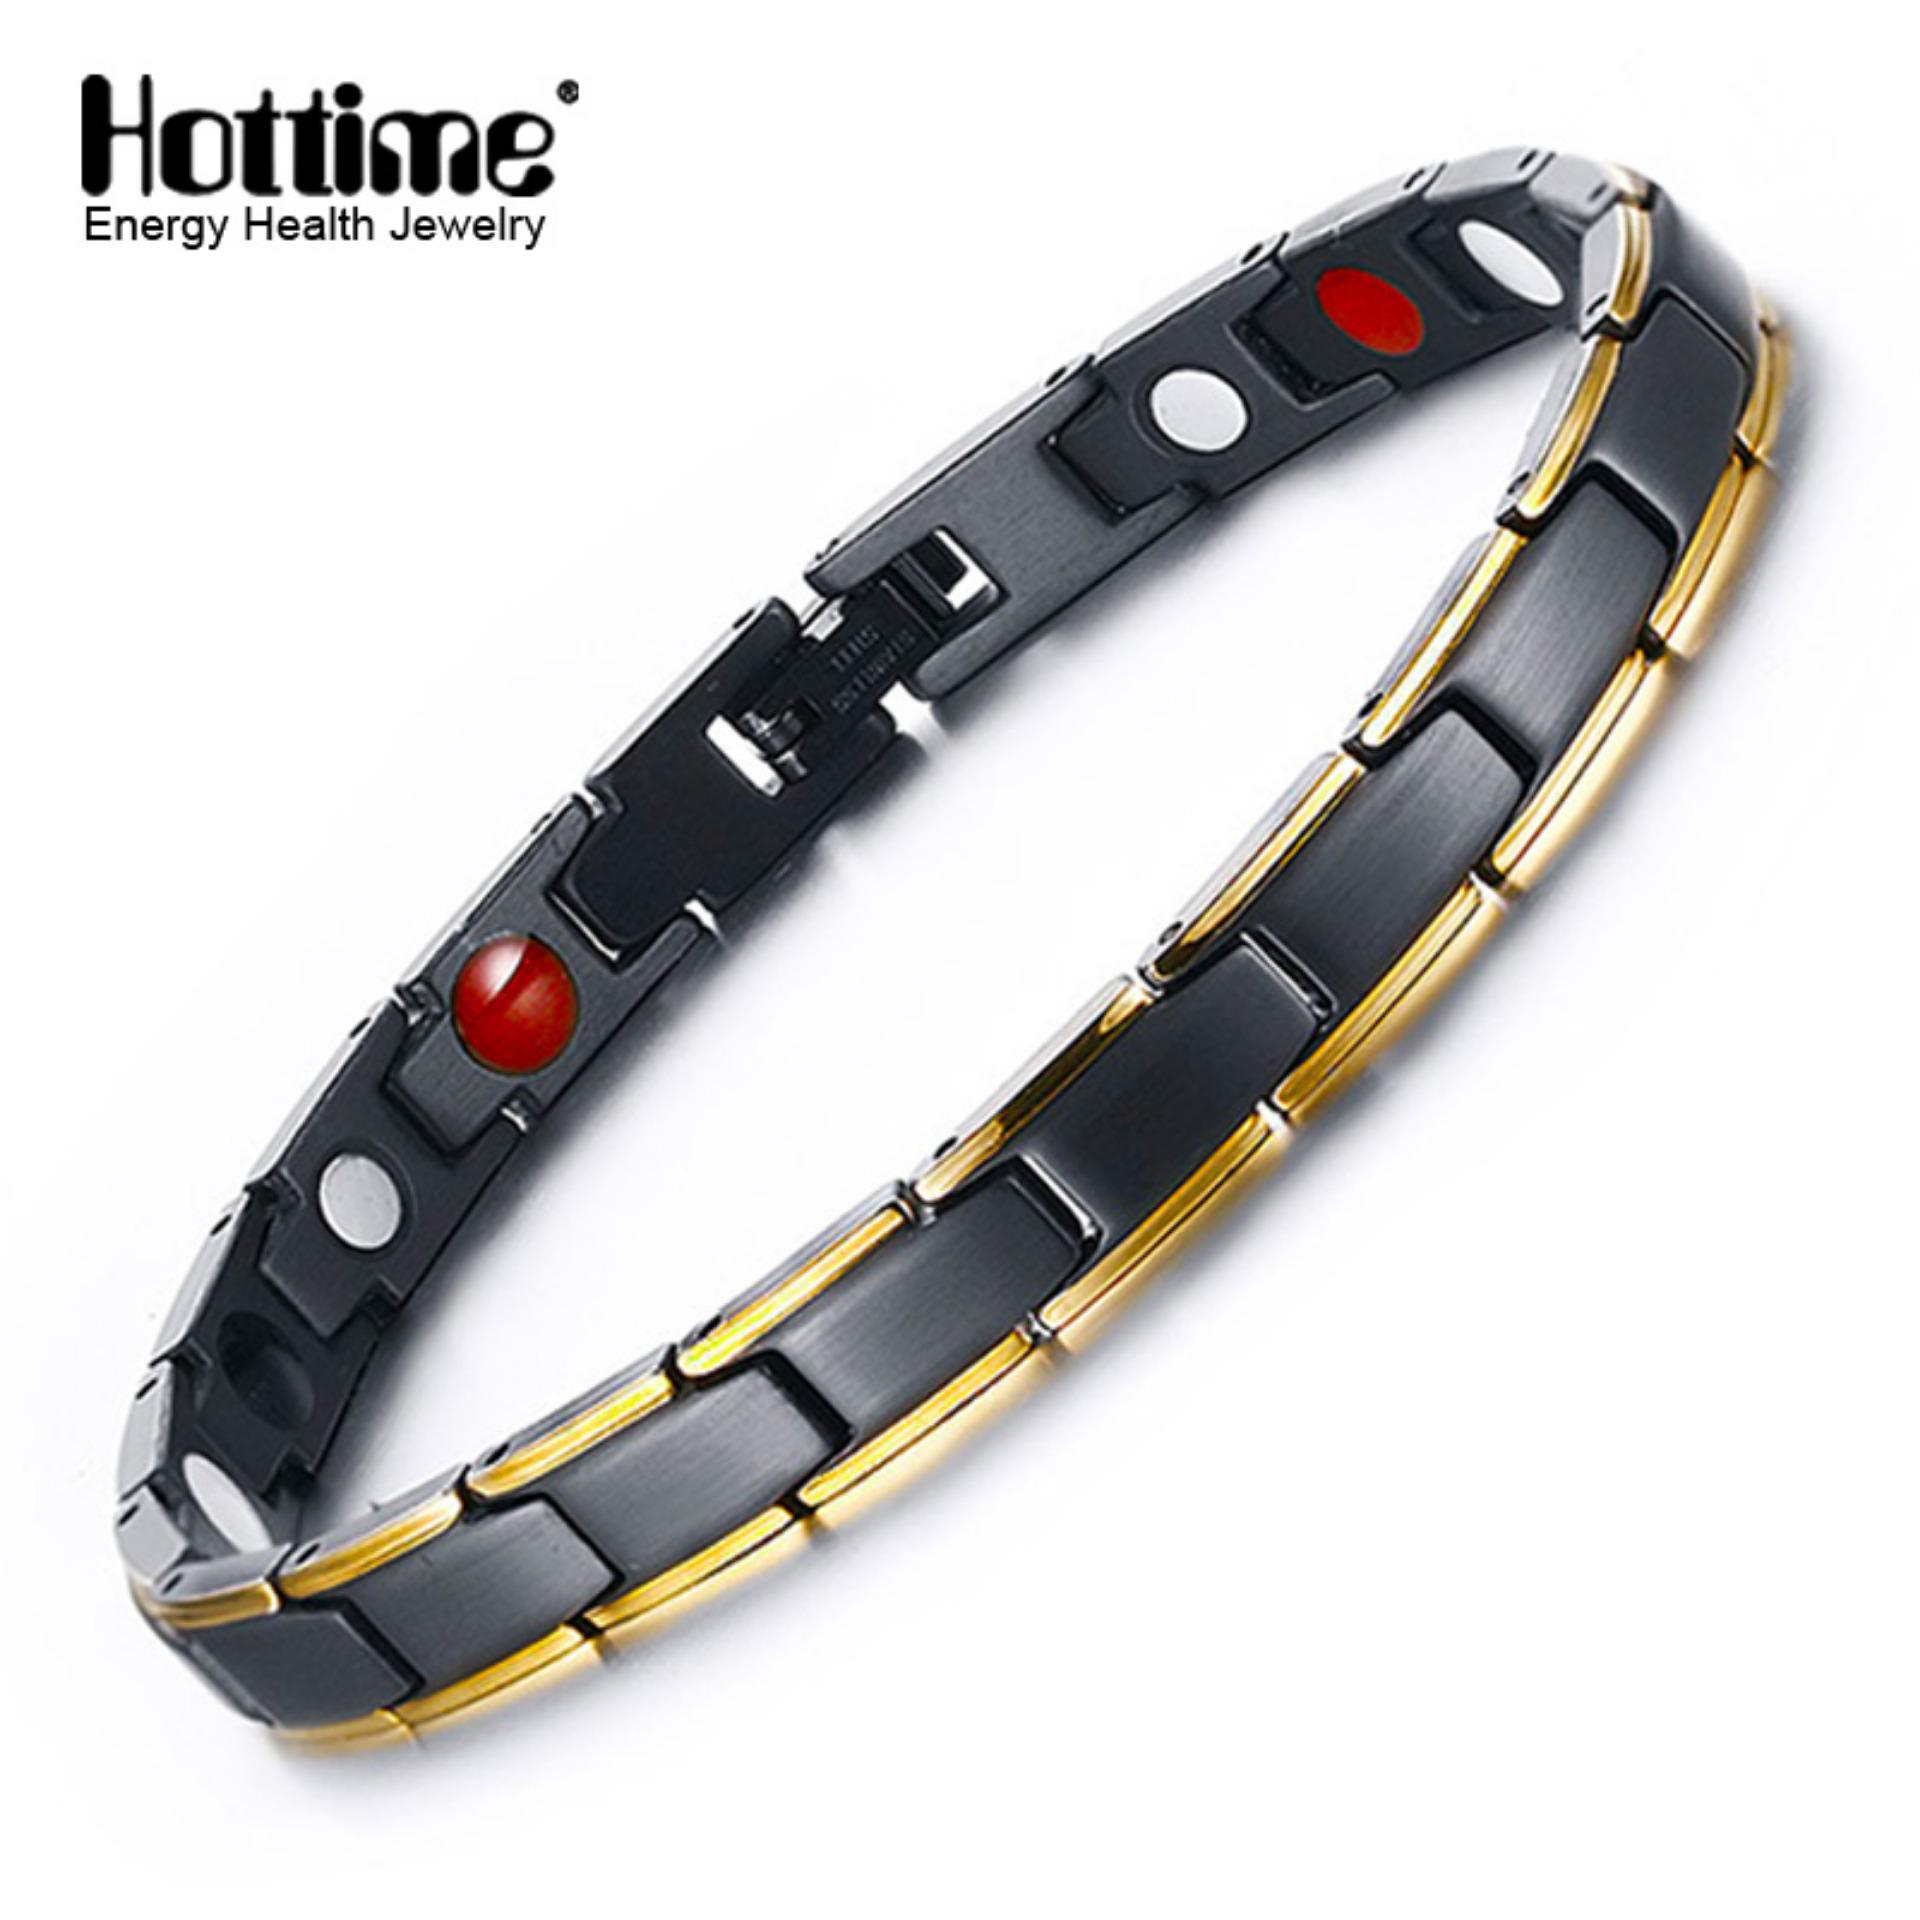 Harga Hottime 4 In 1 Magnetic New Fashion Lovers Jewelry Steel Black Gold Titanium Bracelet For Women And Men Never Fade Top Quality 10089 Intl Dan Spesifikasinya